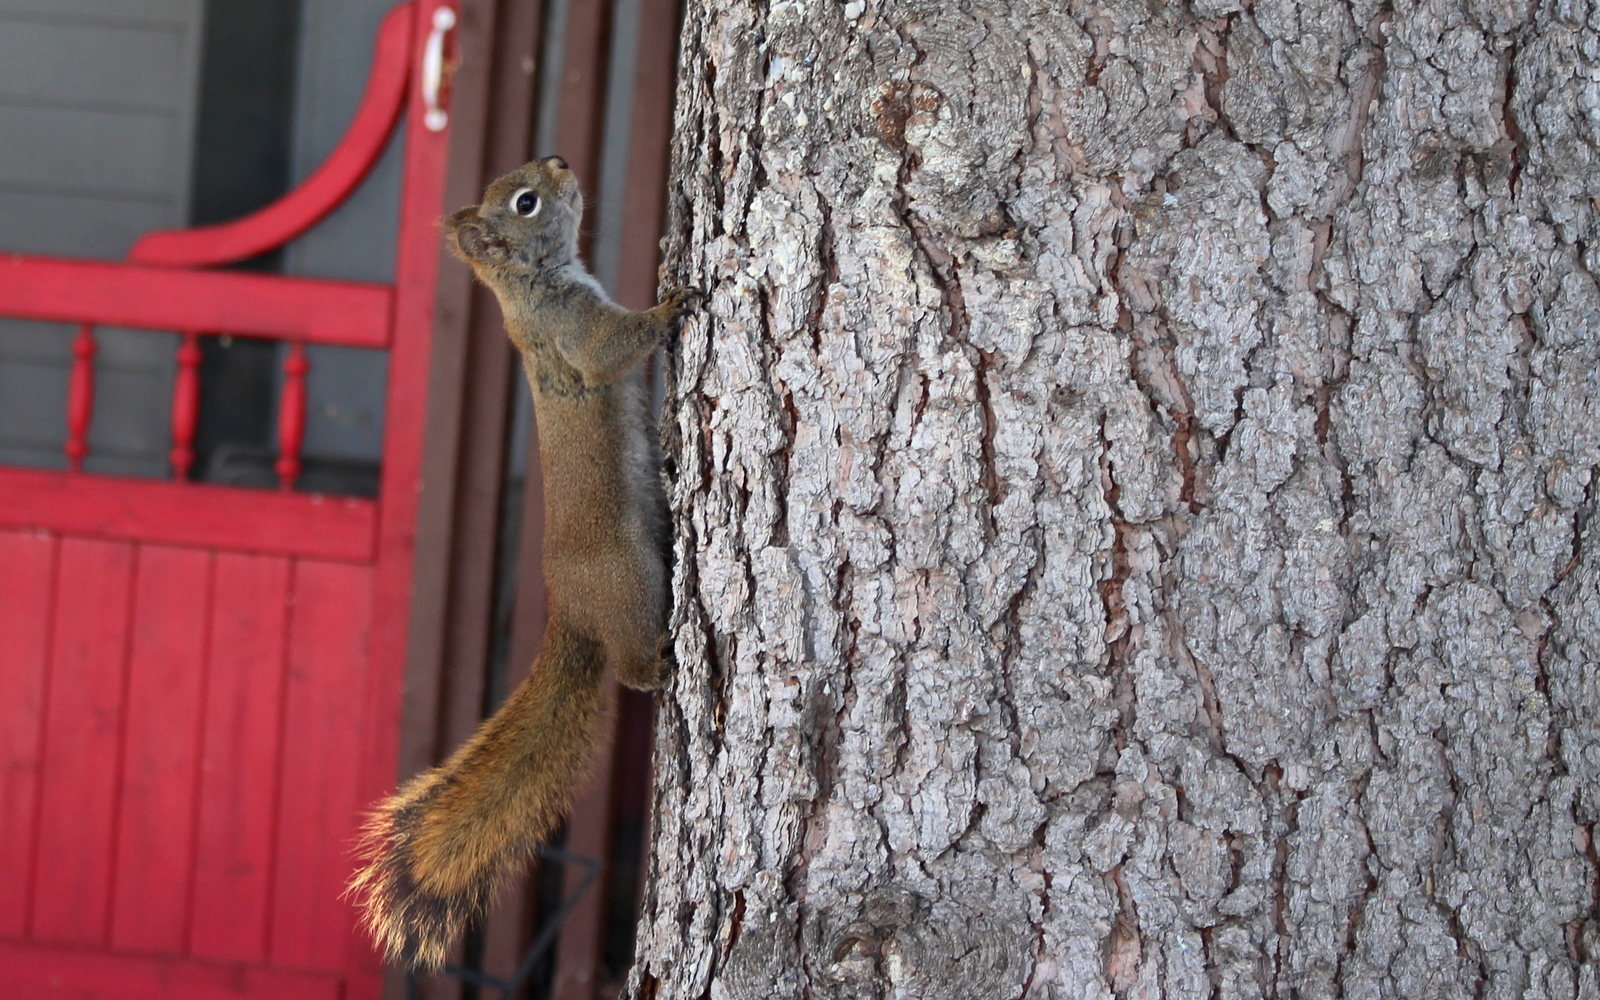 Normal2x red squirrel   rodent   edmonton   yeg   walkable   city   780   wildlife   nature